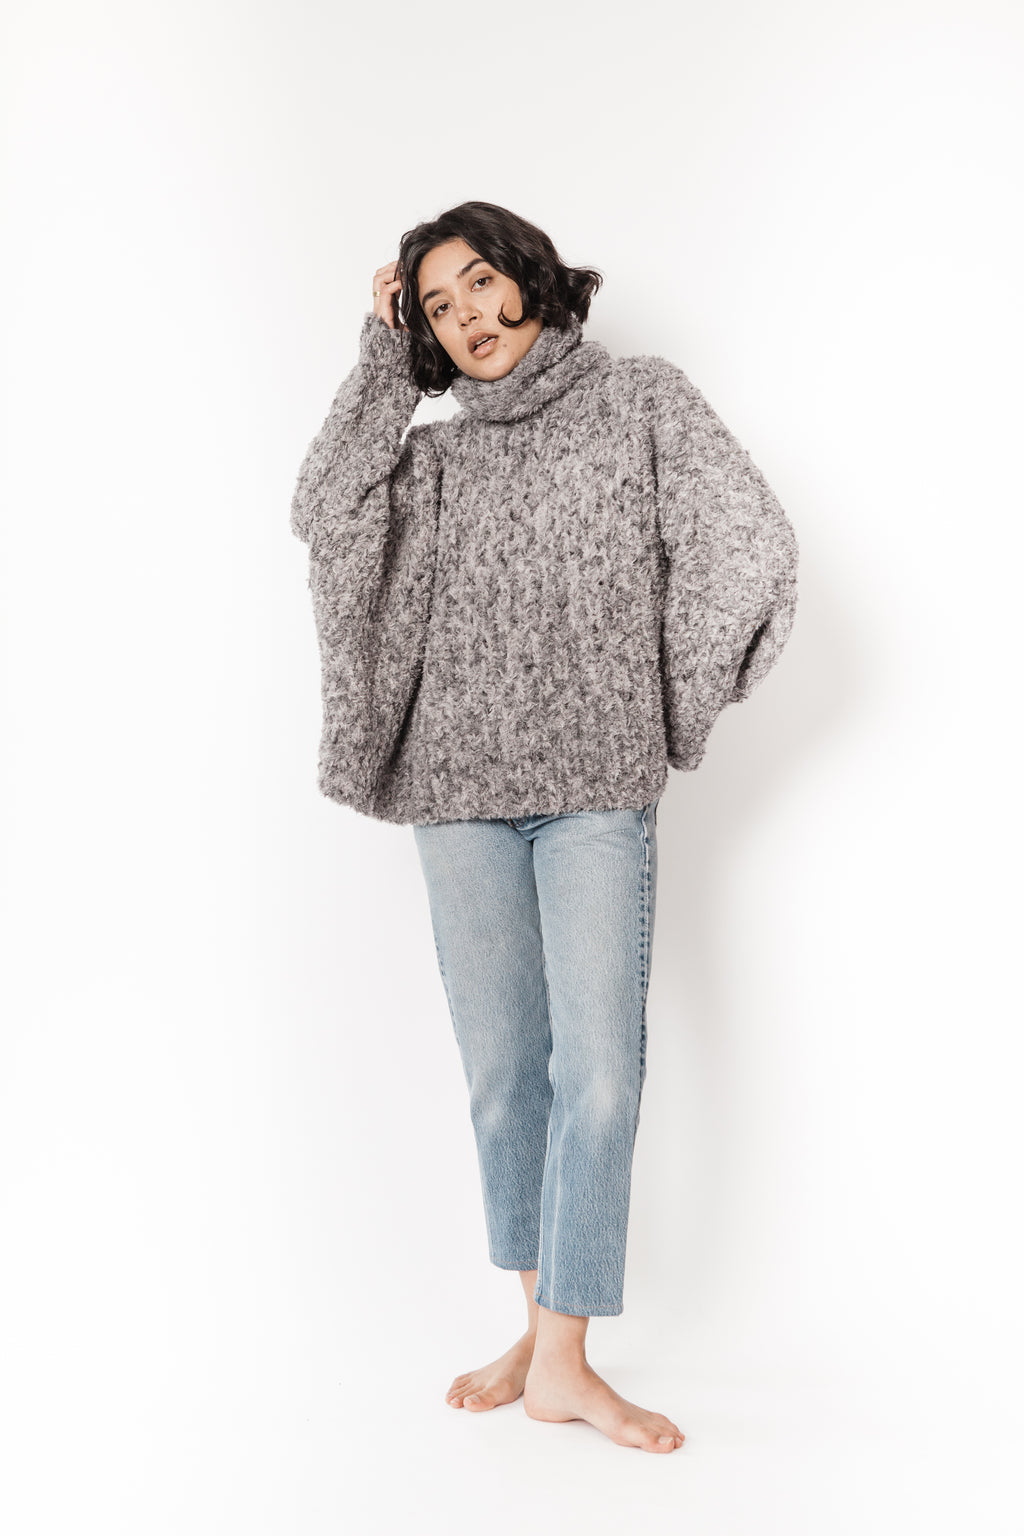 Smythe hand knit swing turtleneck